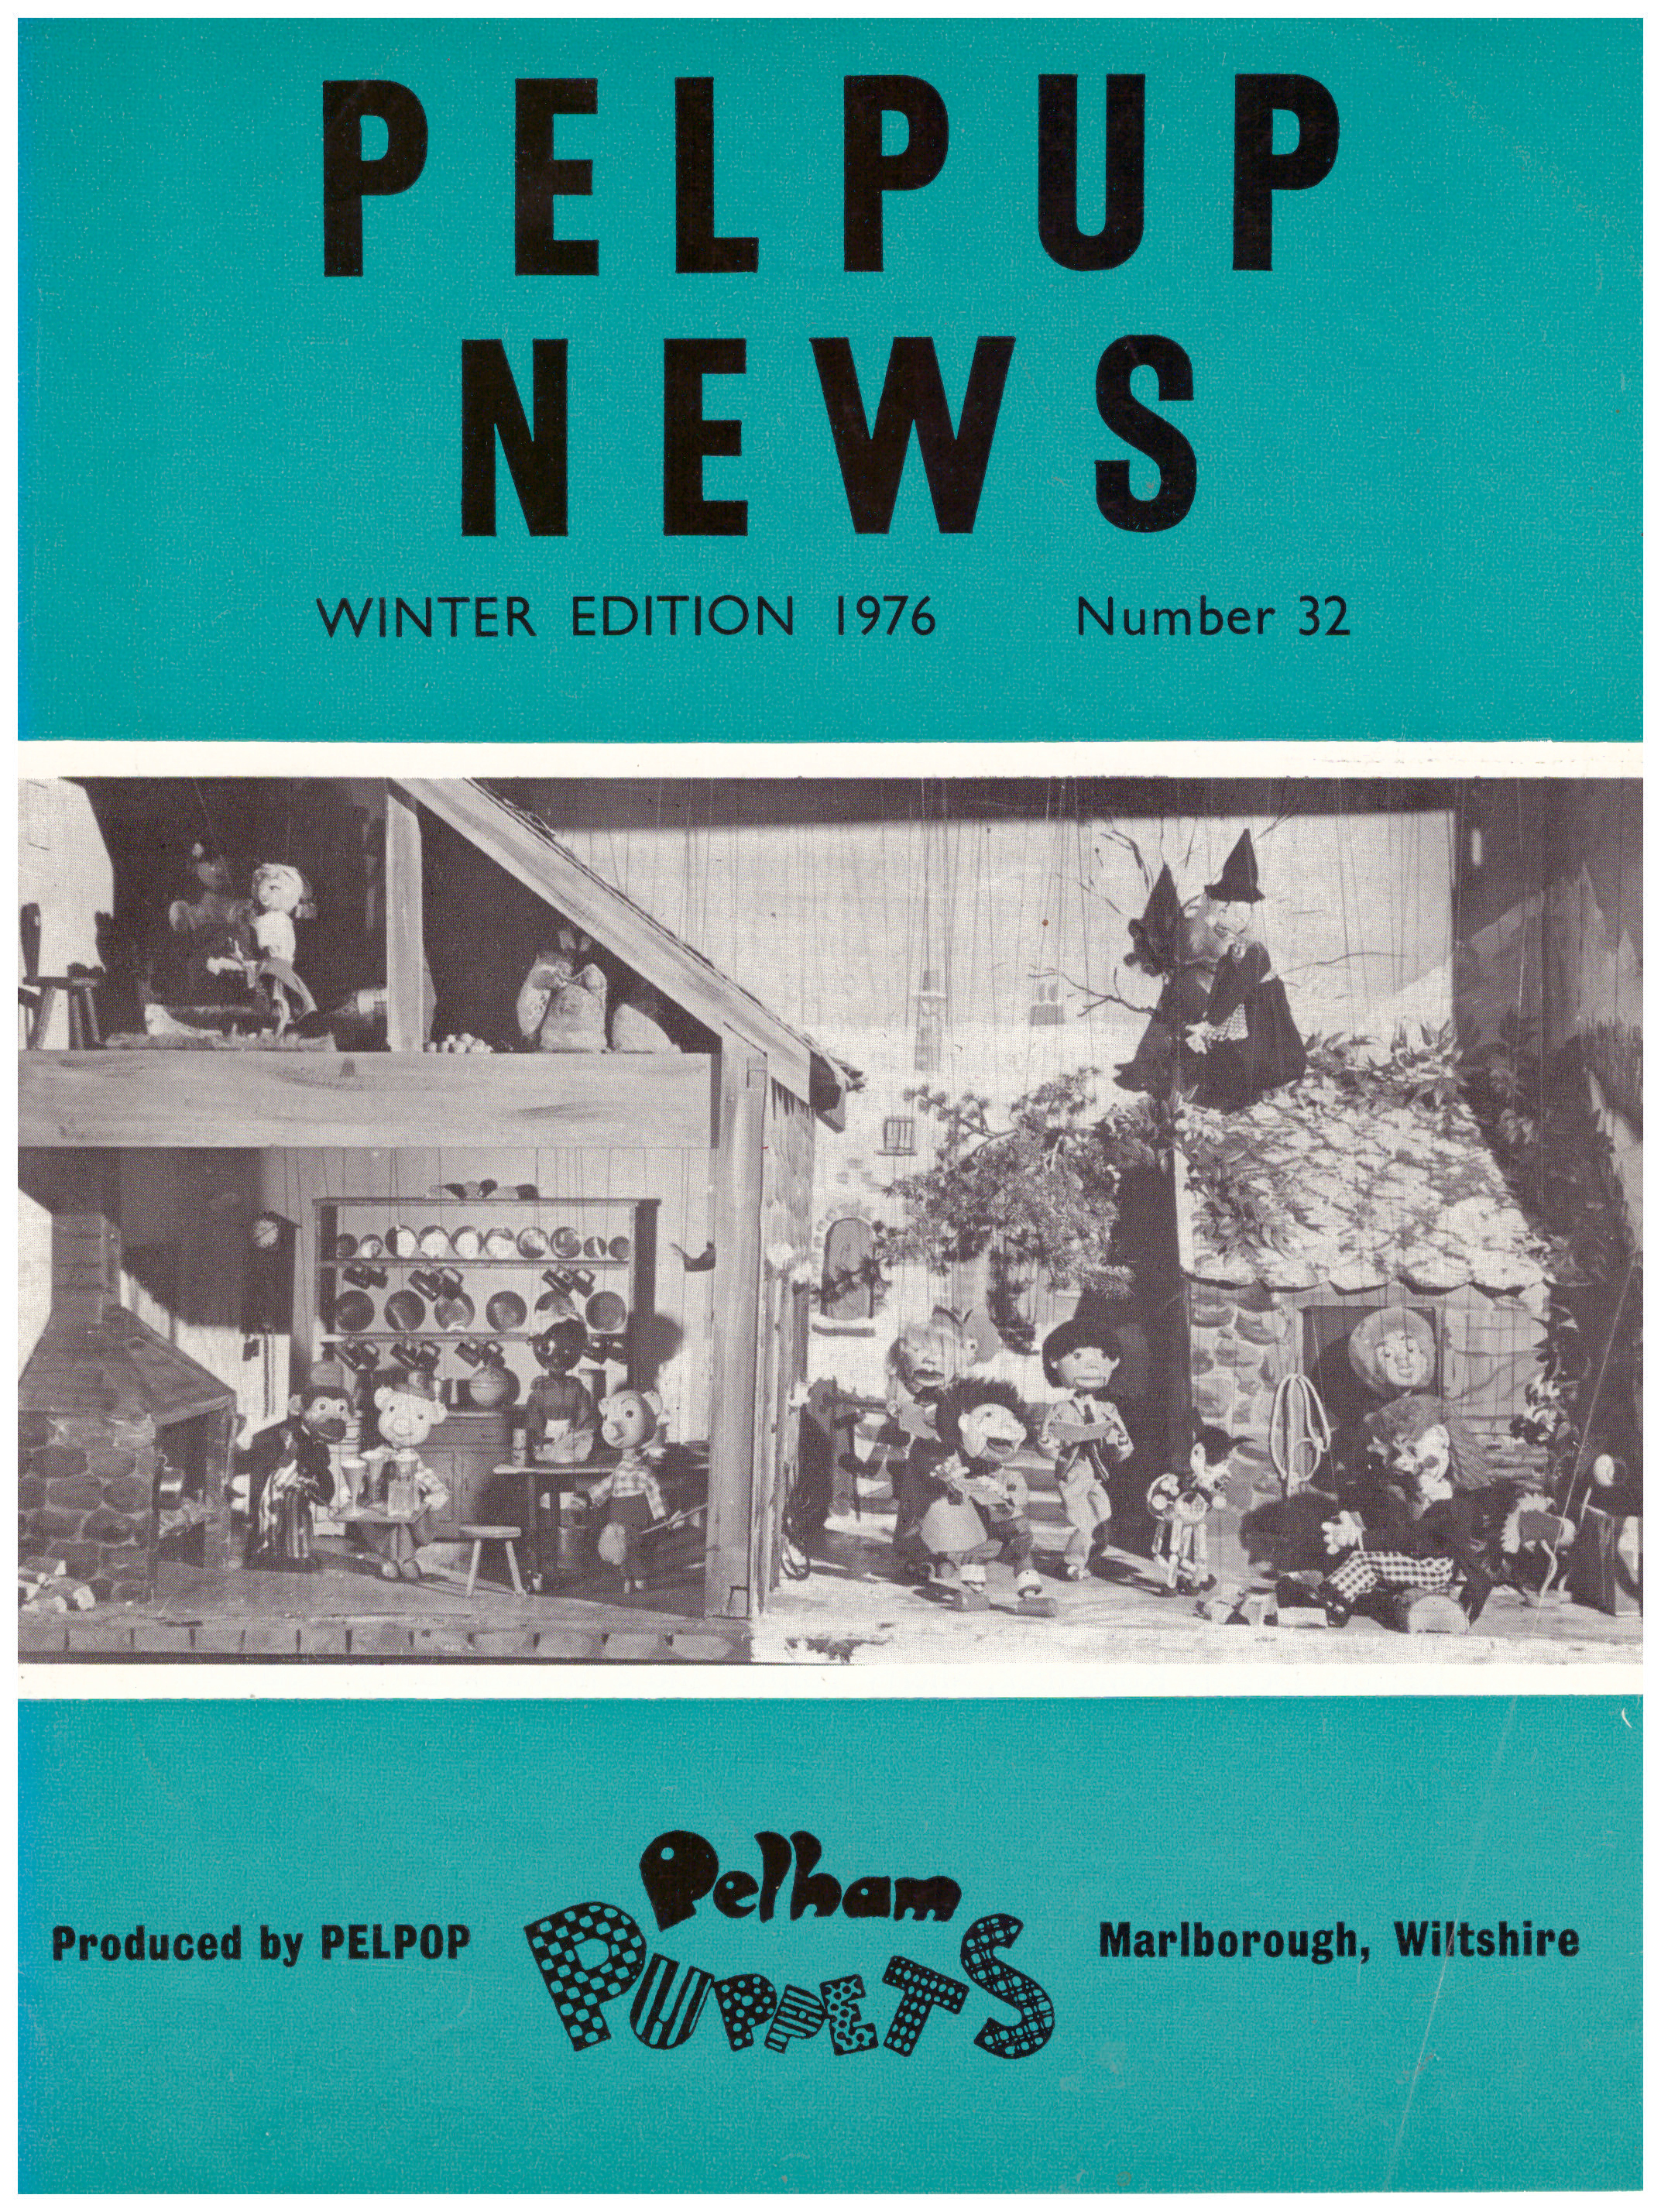 Winter Edition 1976 Number 32